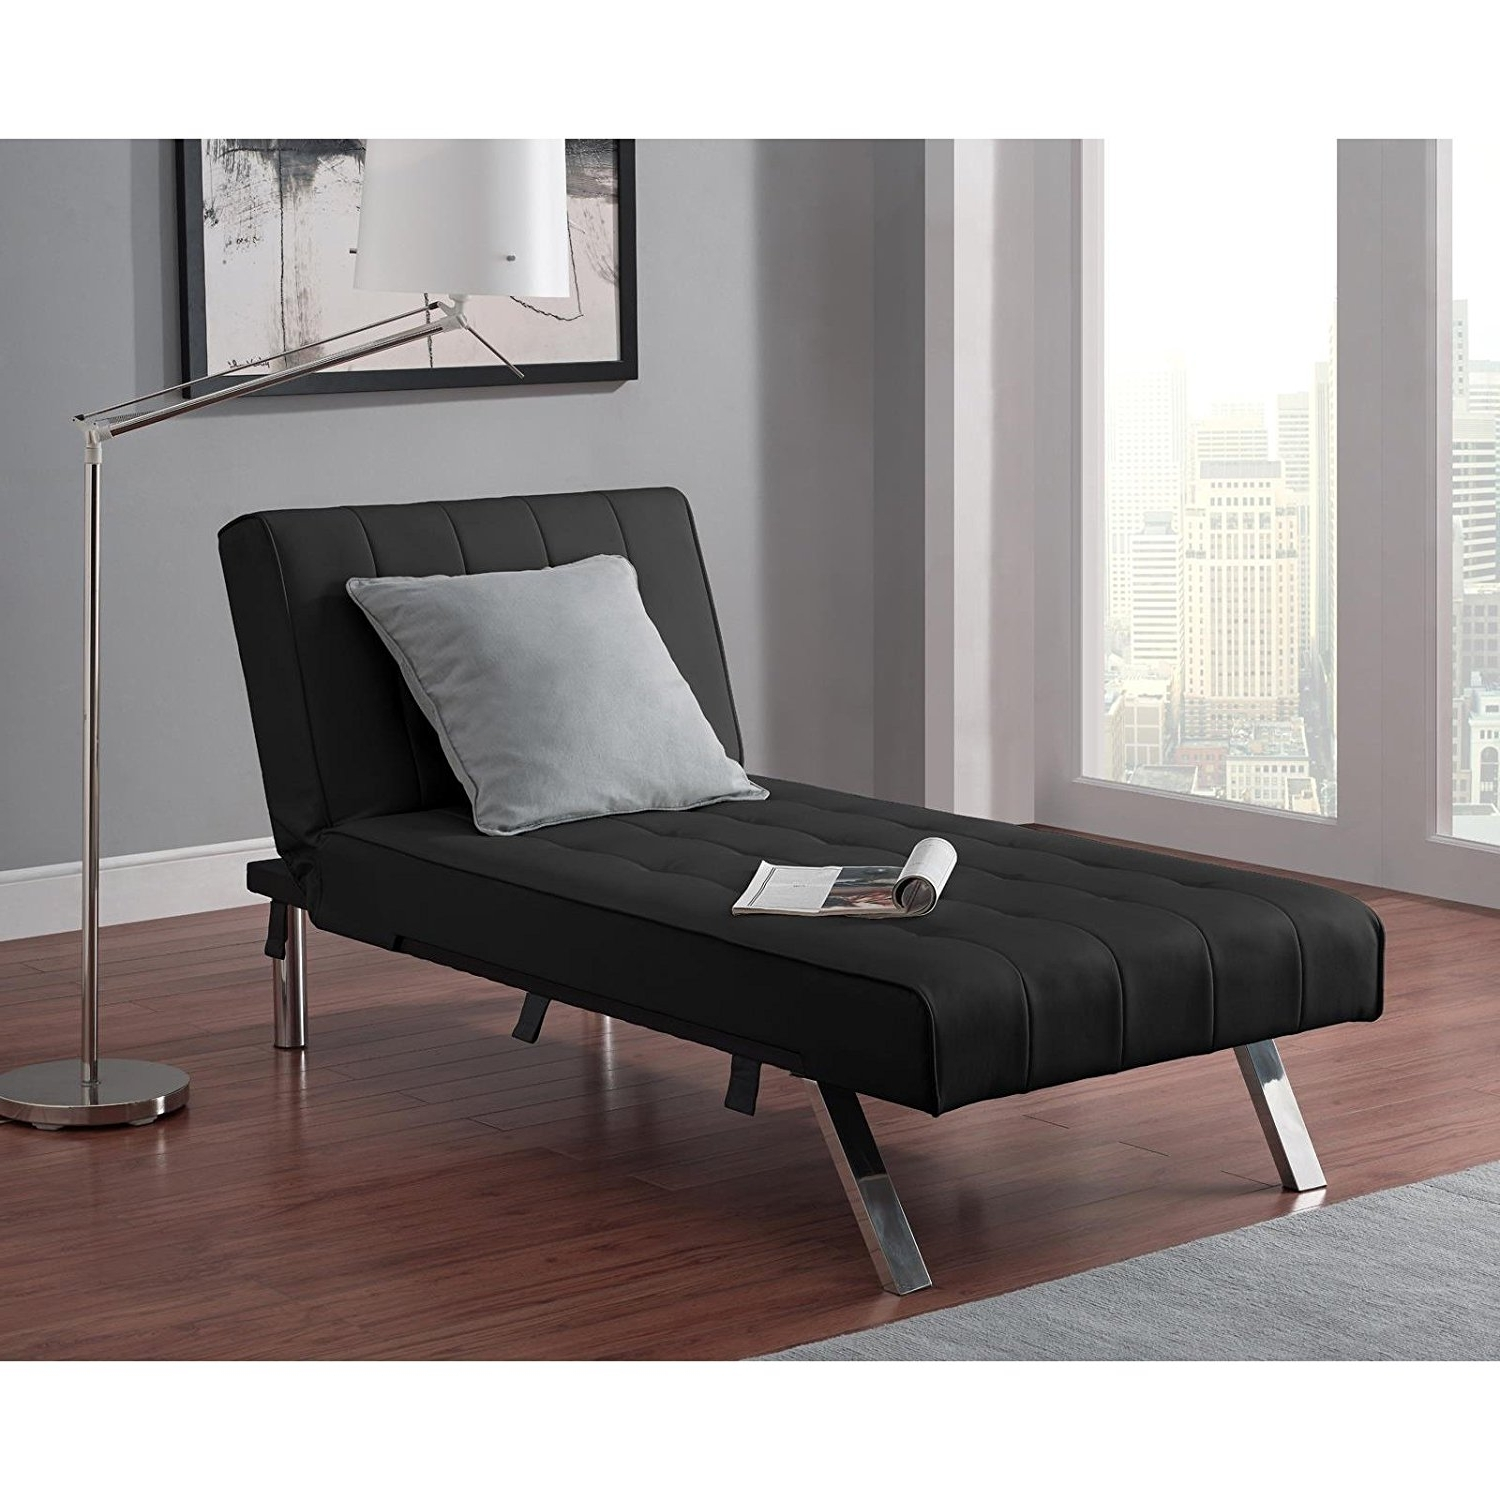 Convertible Chaise Lounges In Best And Newest Amazon: Emily Futon With Chaise Lounger Super Bonus Set Black (View 15 of 15)